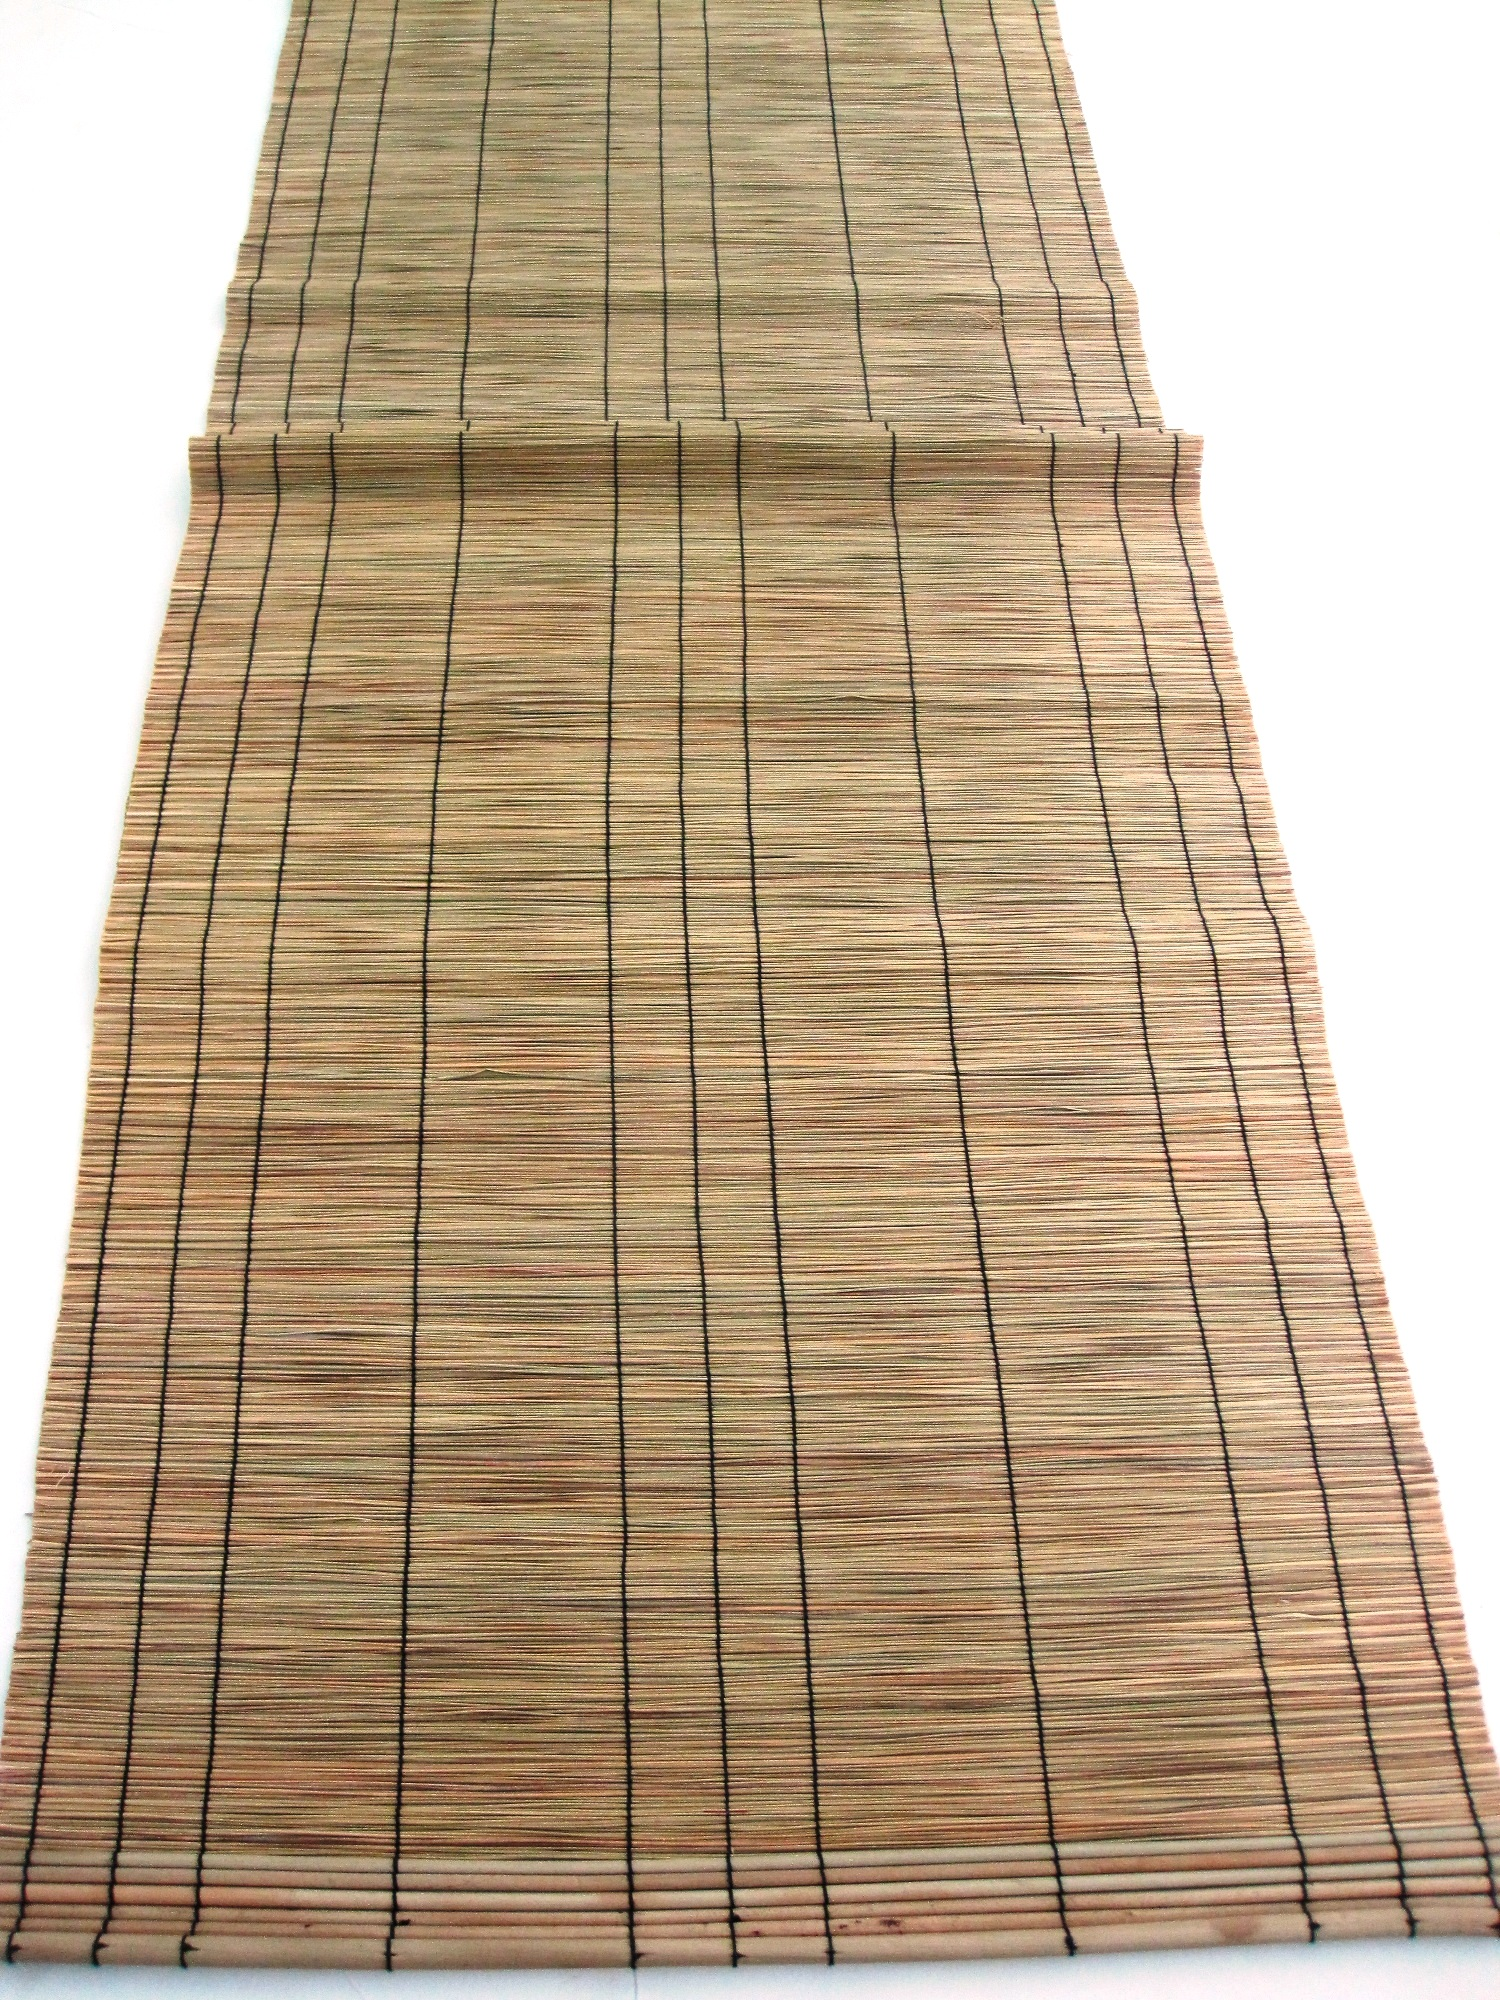 Handwoven Table Runner - Natural